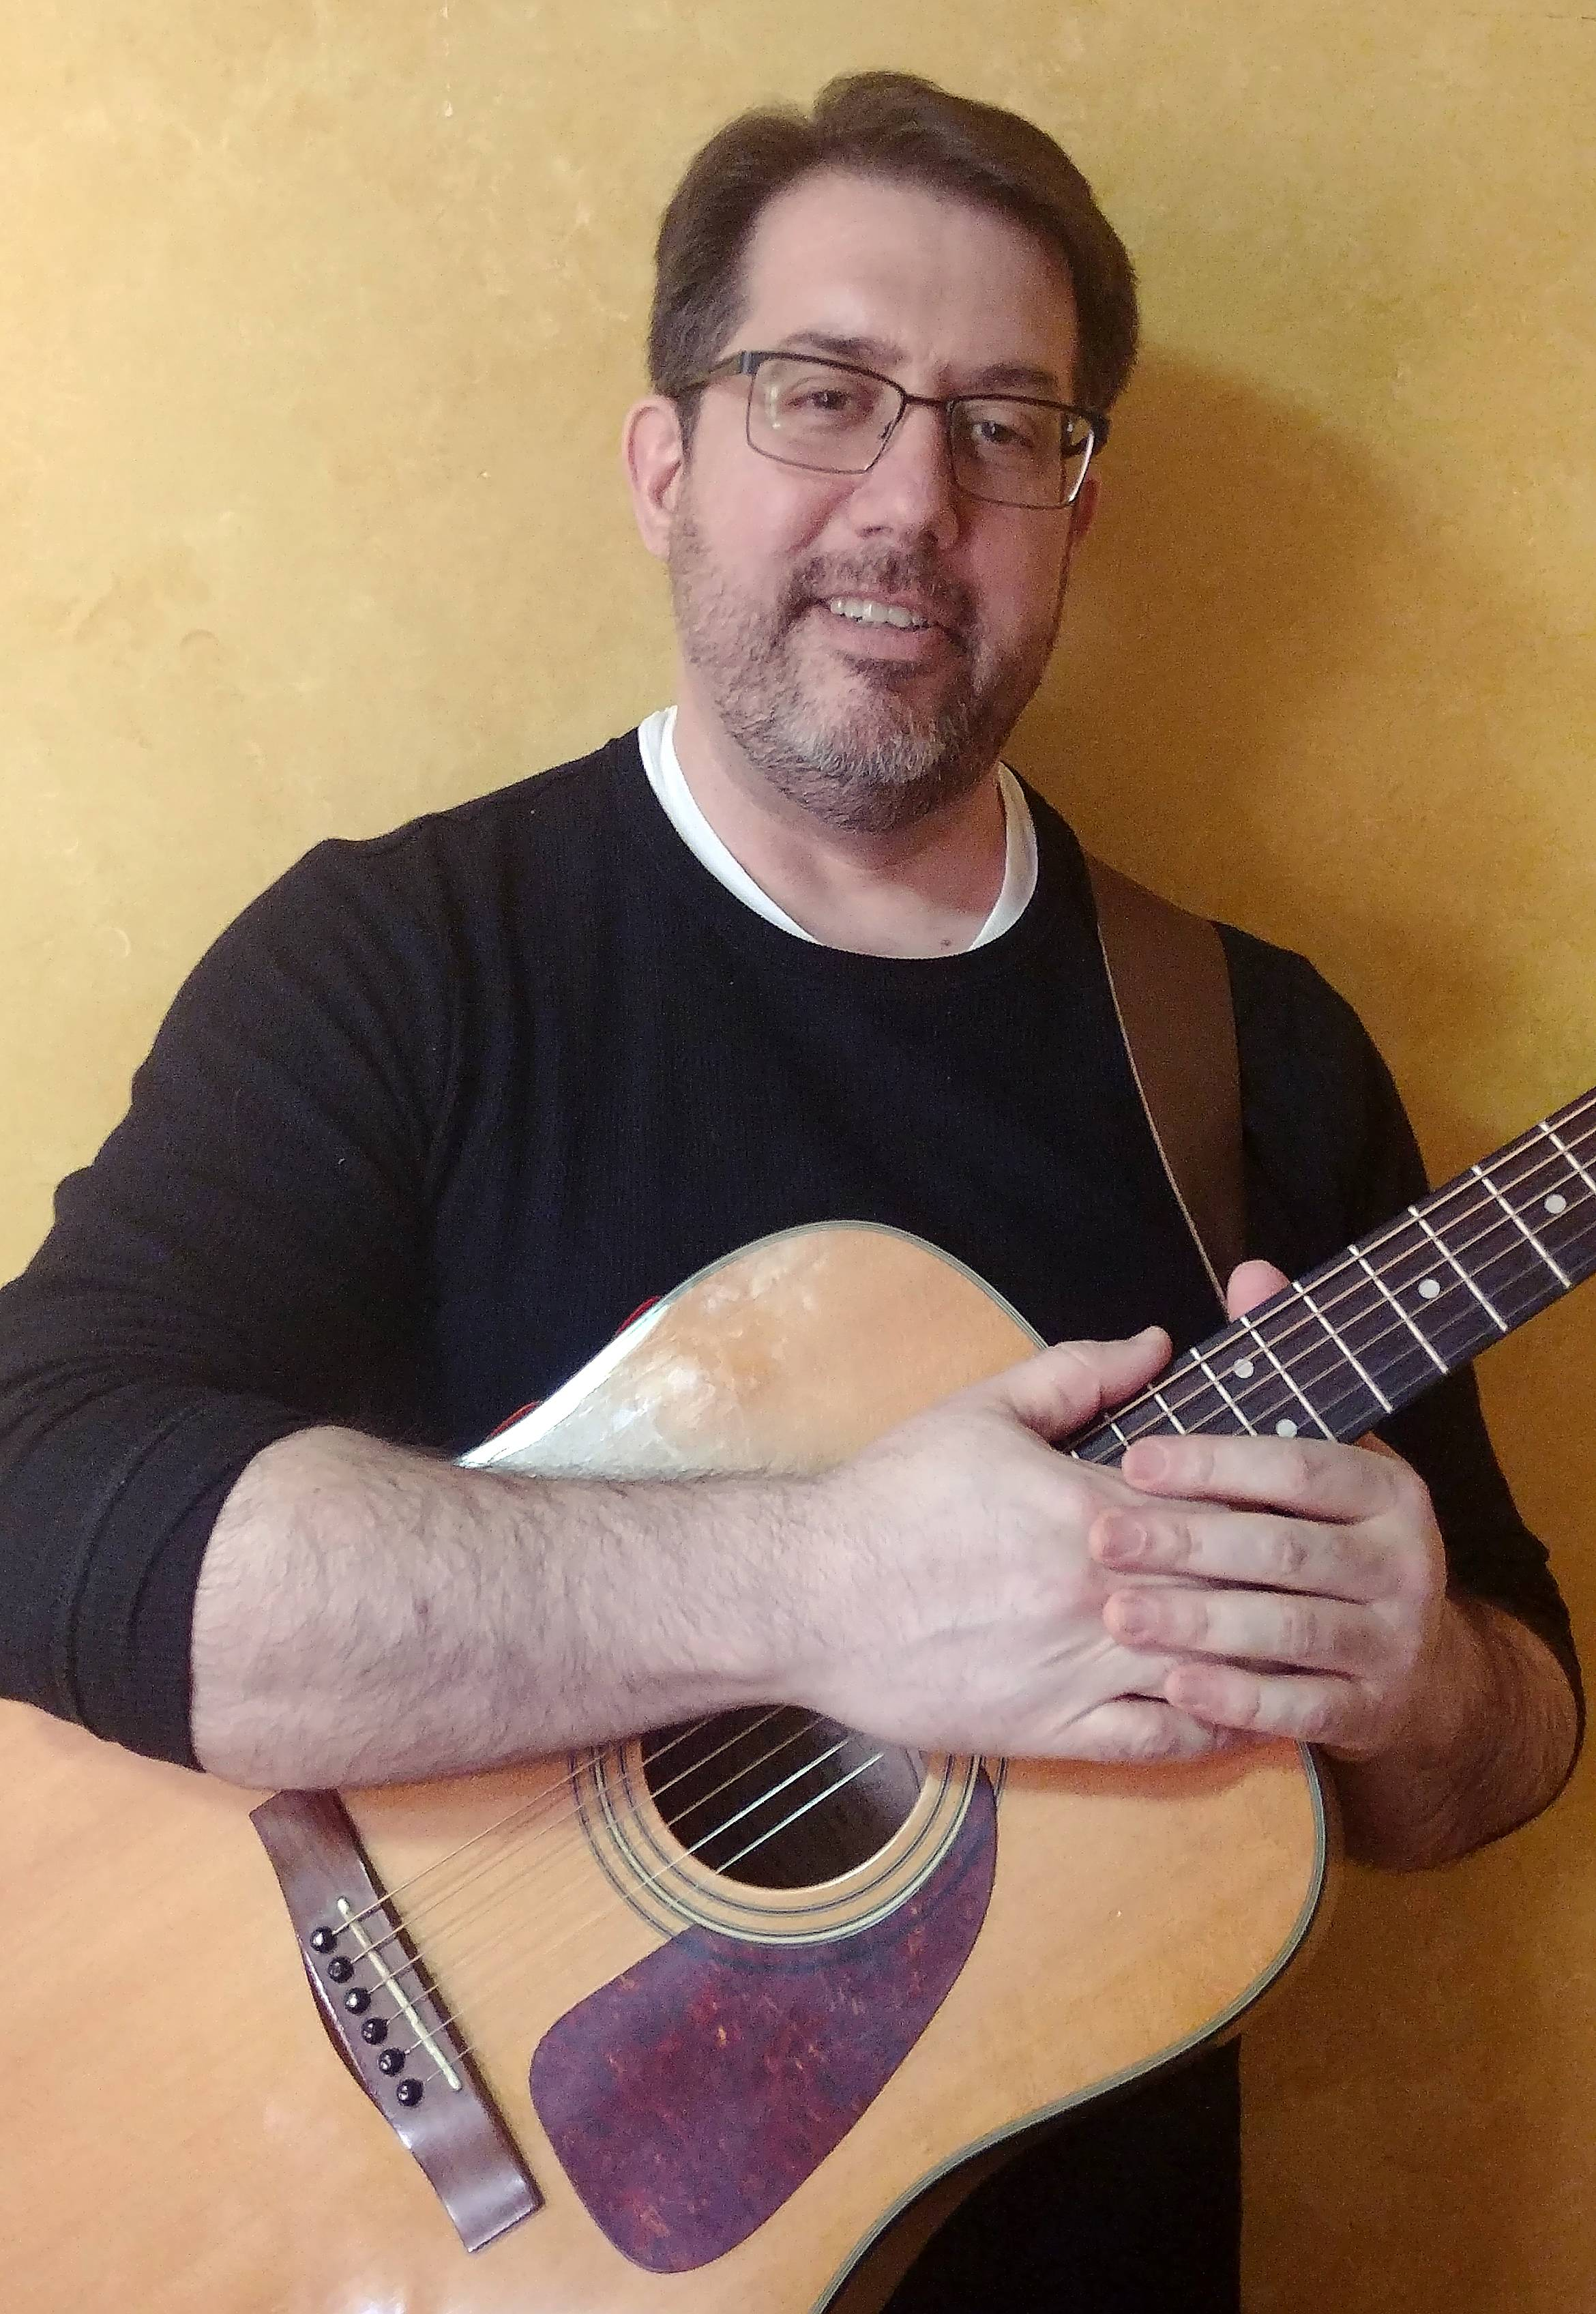 Chuck DiPietro of Batavia is fighting colon and liver cancer, and coping by creating a music support group at the LivingWell Cancer Resource Center in Geneva.